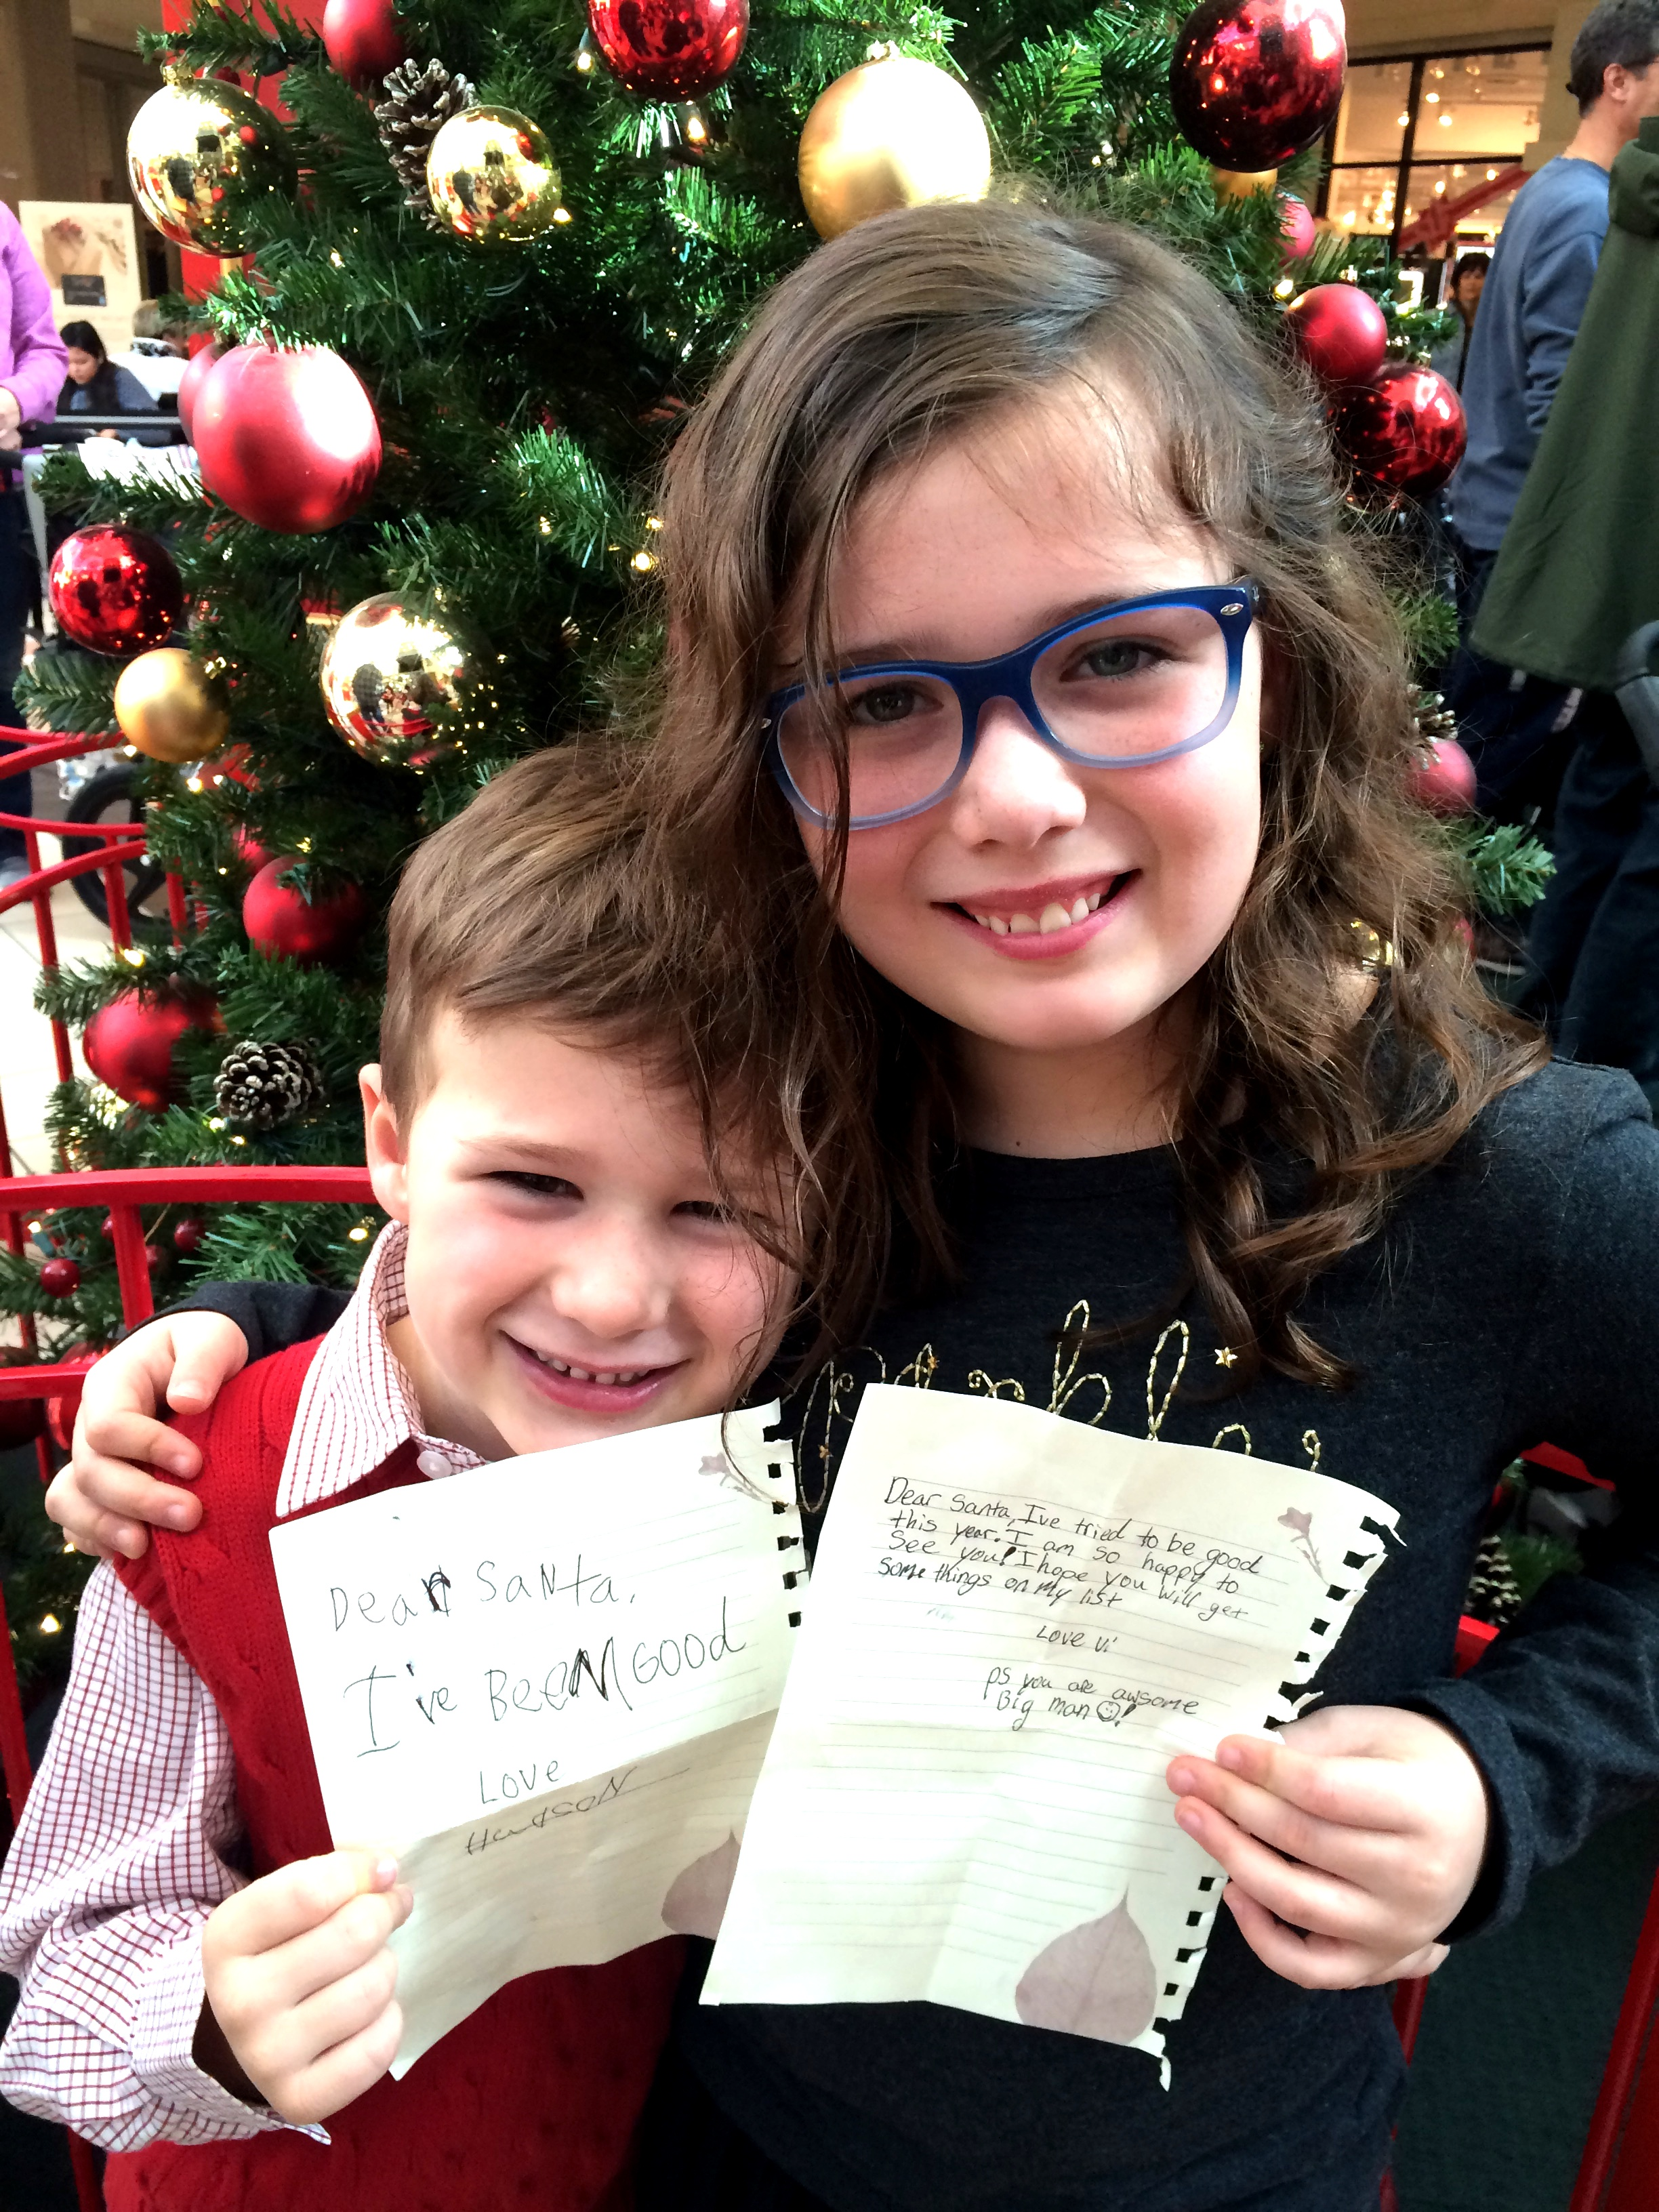 Patiently waiting in line with their lists to see Santa!